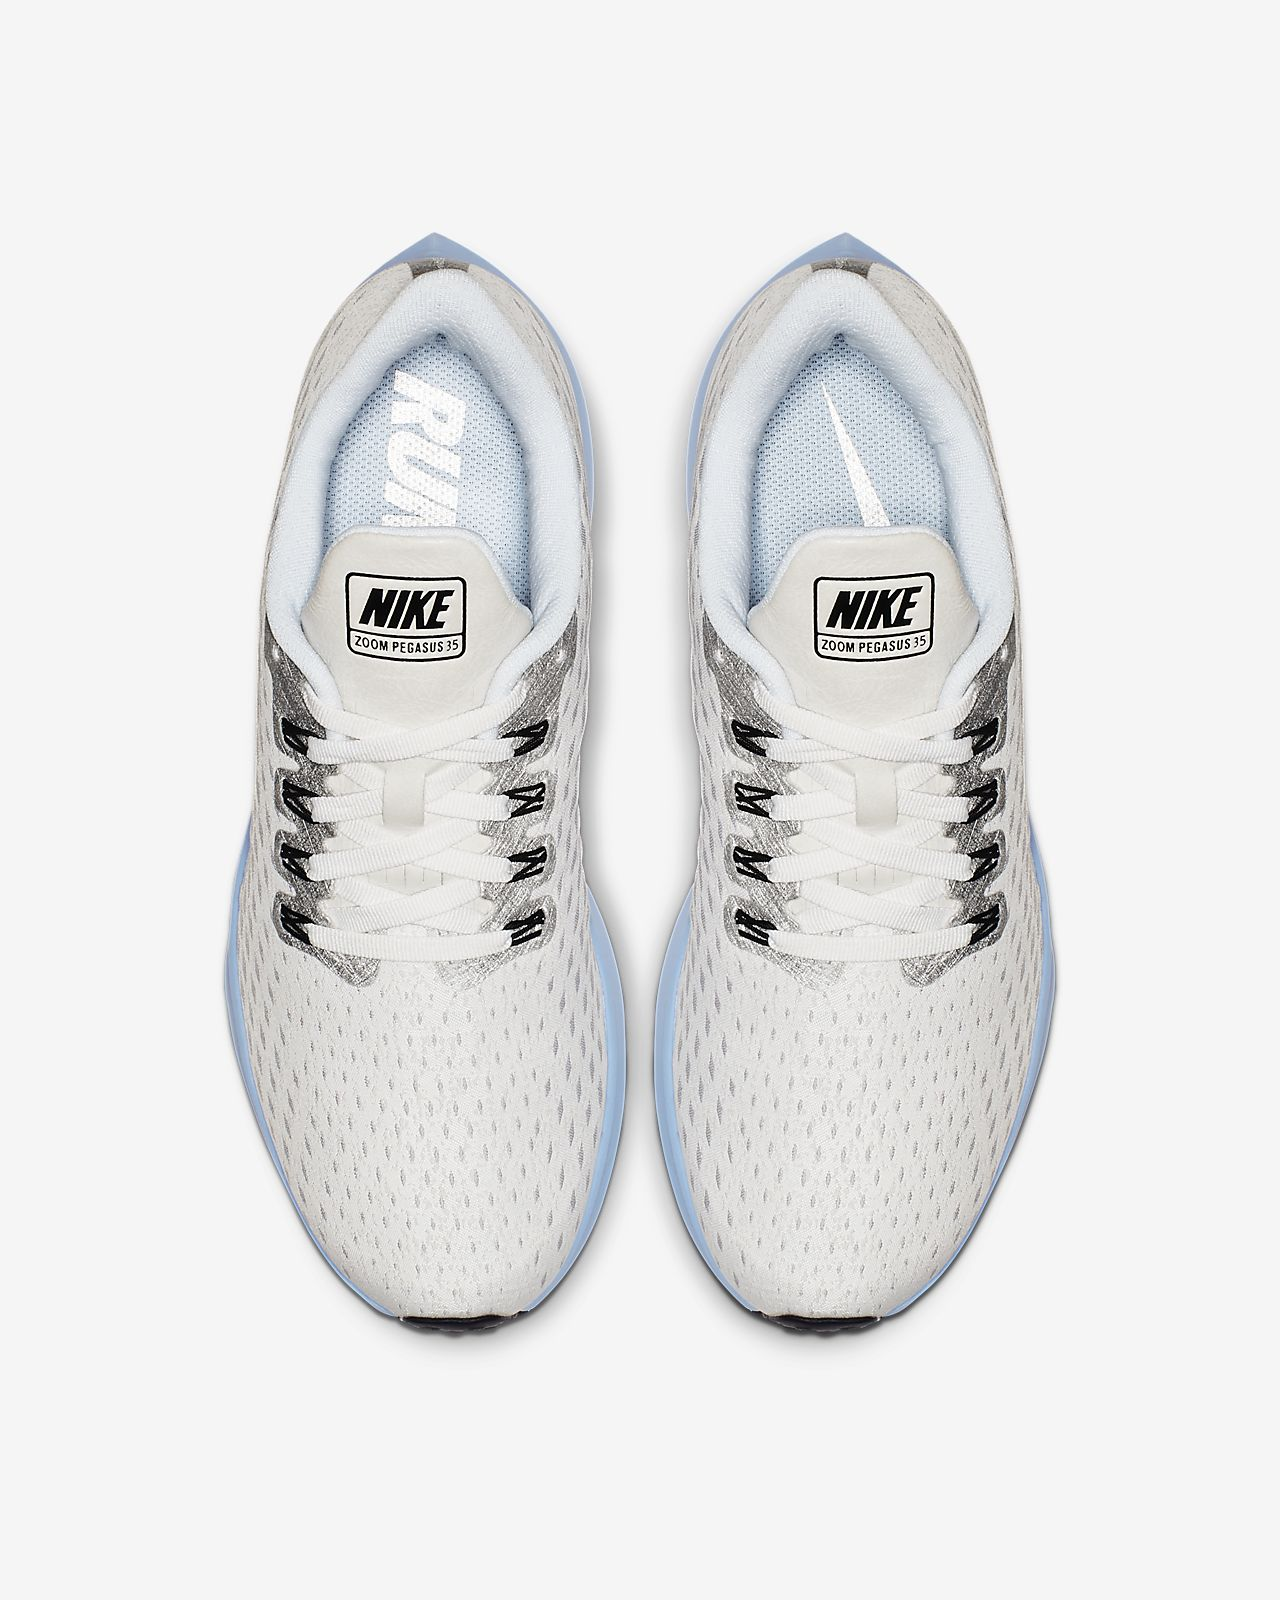 for whole family first look fast delivery Chaussure de running Nike Air Zoom Pegasus 35 Premium pour Femme